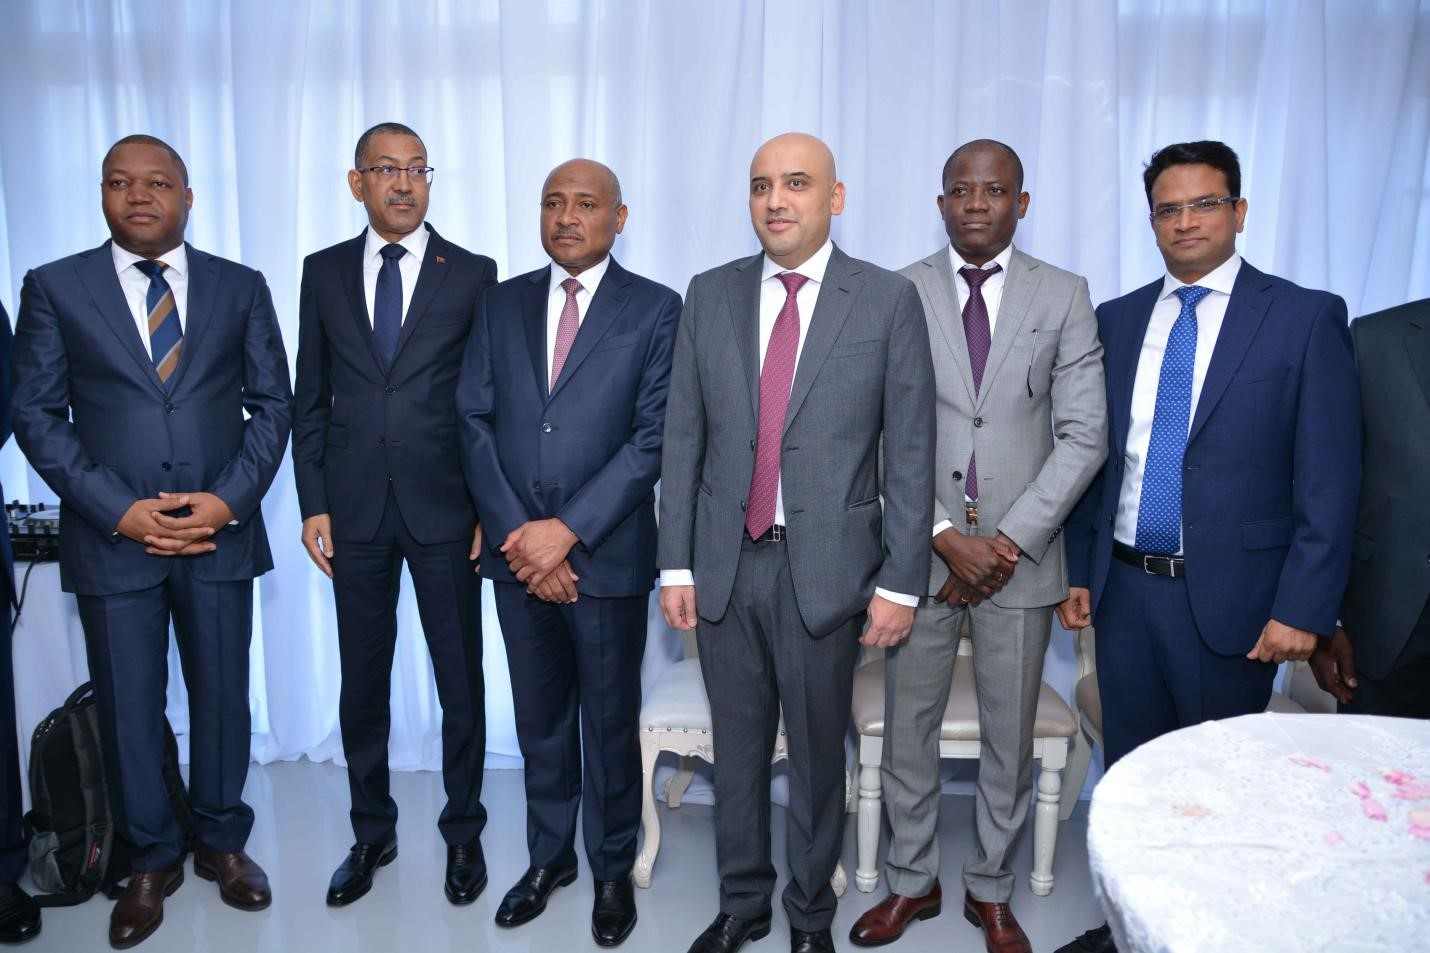 KGK contributes to the democratic ecosystem in Angola by establishing a new diamond manufacturing facility